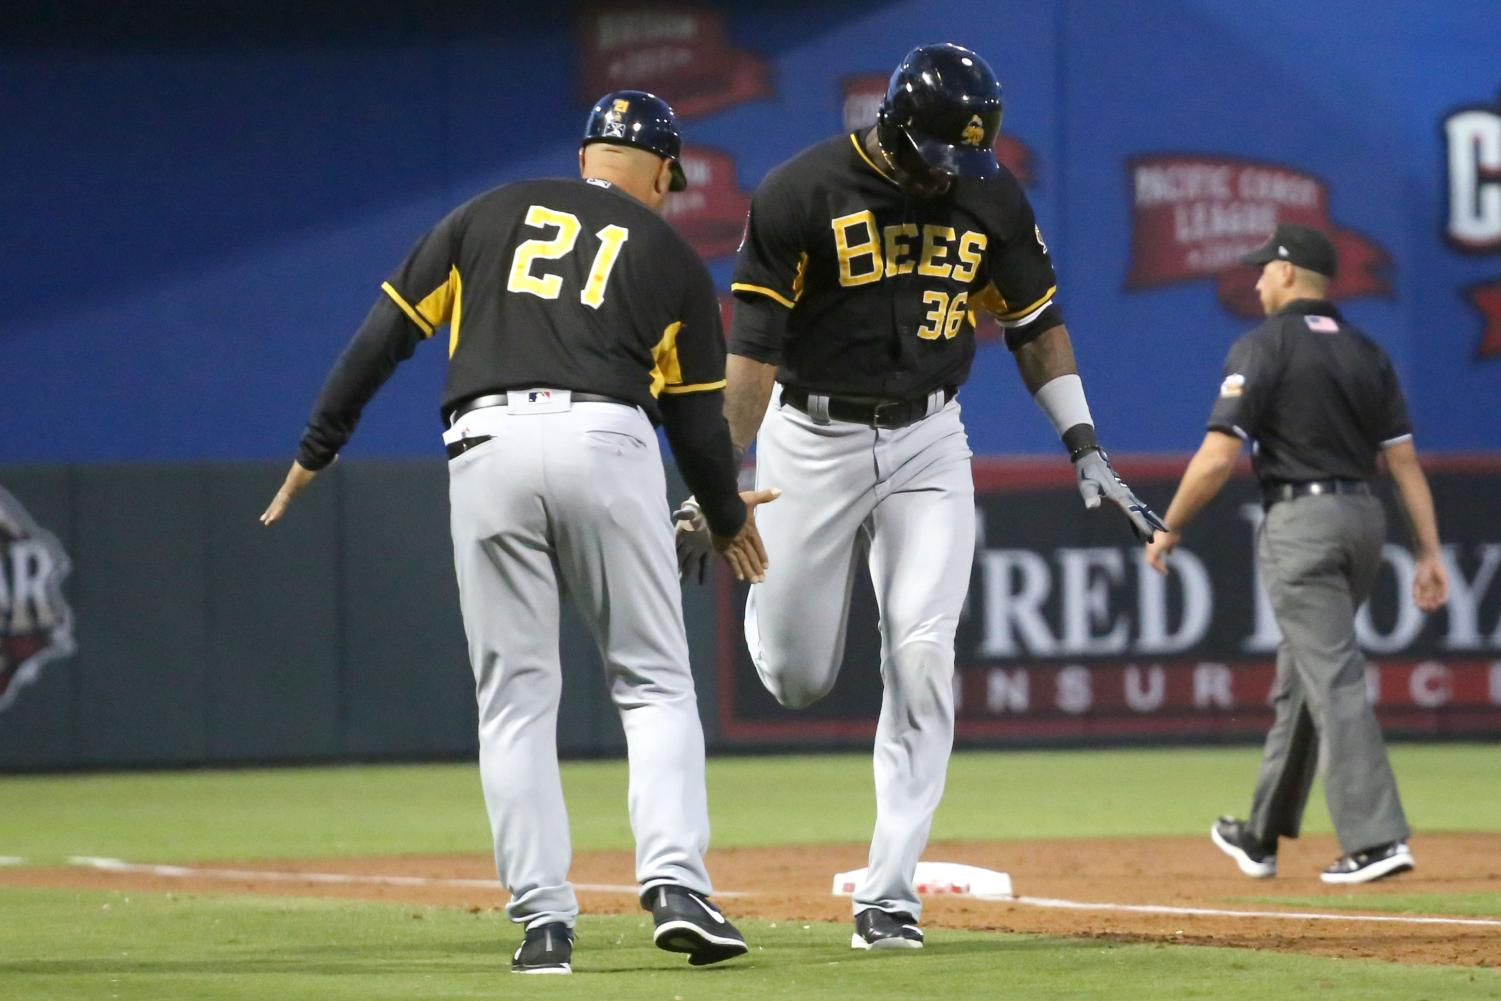 Right fielder Jabari Blash high fives manager Keith Johnson on his way to home base after hitting a home-run on the Chihuahuas opening night on Tuesday April 10 at Southwest University Park.